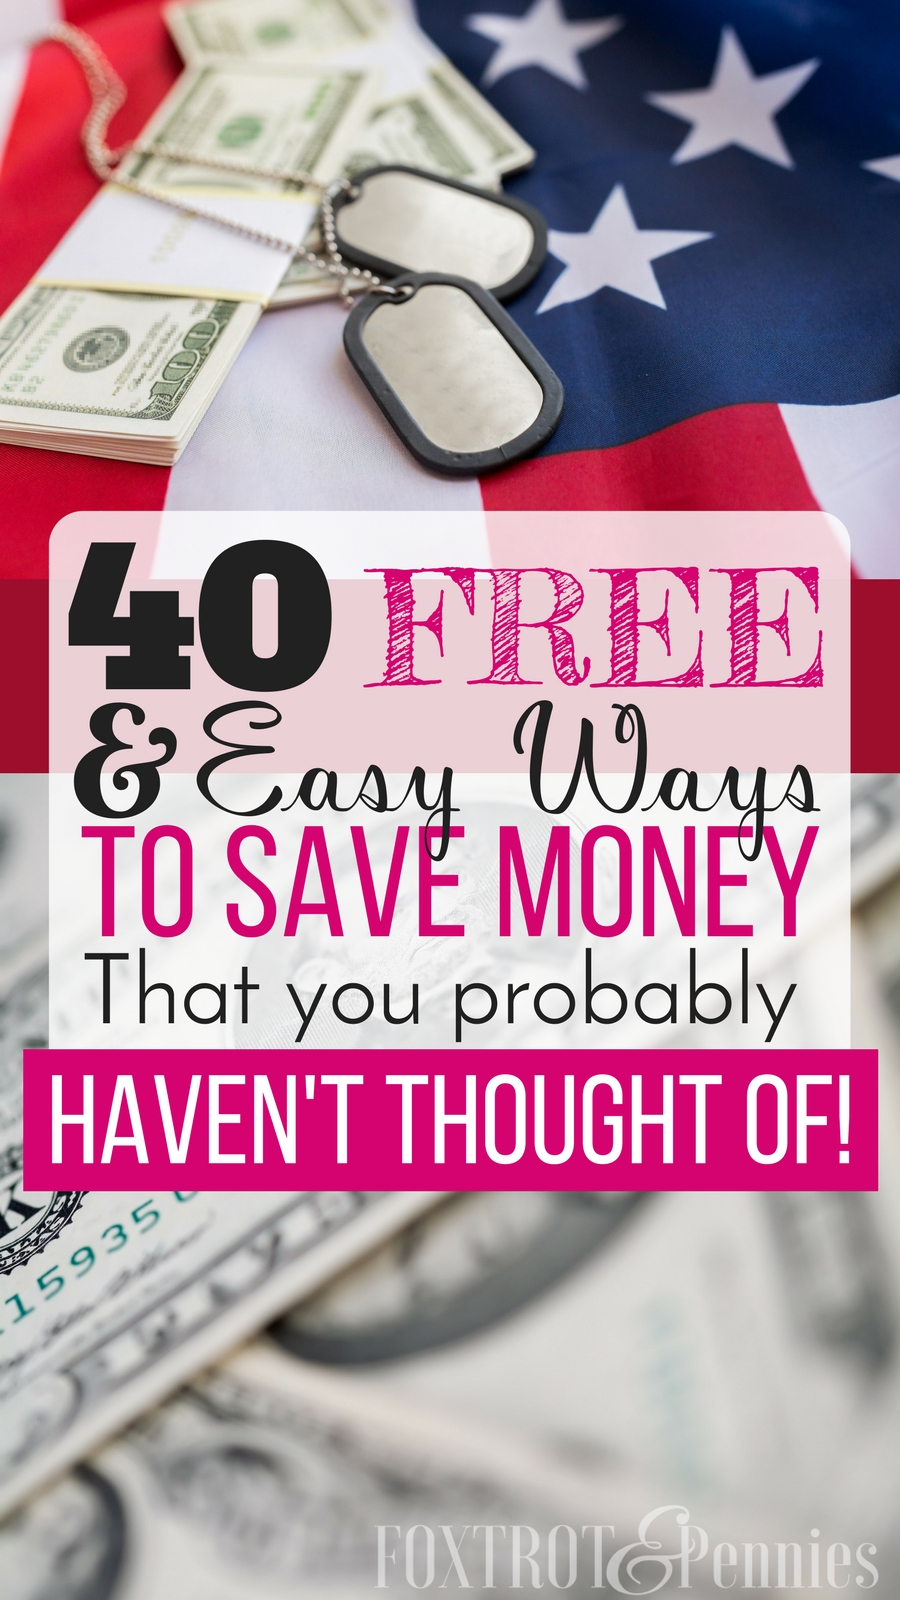 Frugal living meets military resources! These awesome and free ways to reduce monthly expenses will be a huge game changer for your budget! Easy ways to save money indeed! But I think my favorite part oft he article was the free printable checklist, I have checked off 20 so far and I am actually starting to pay off my debt and get closer towards my debt free goal!